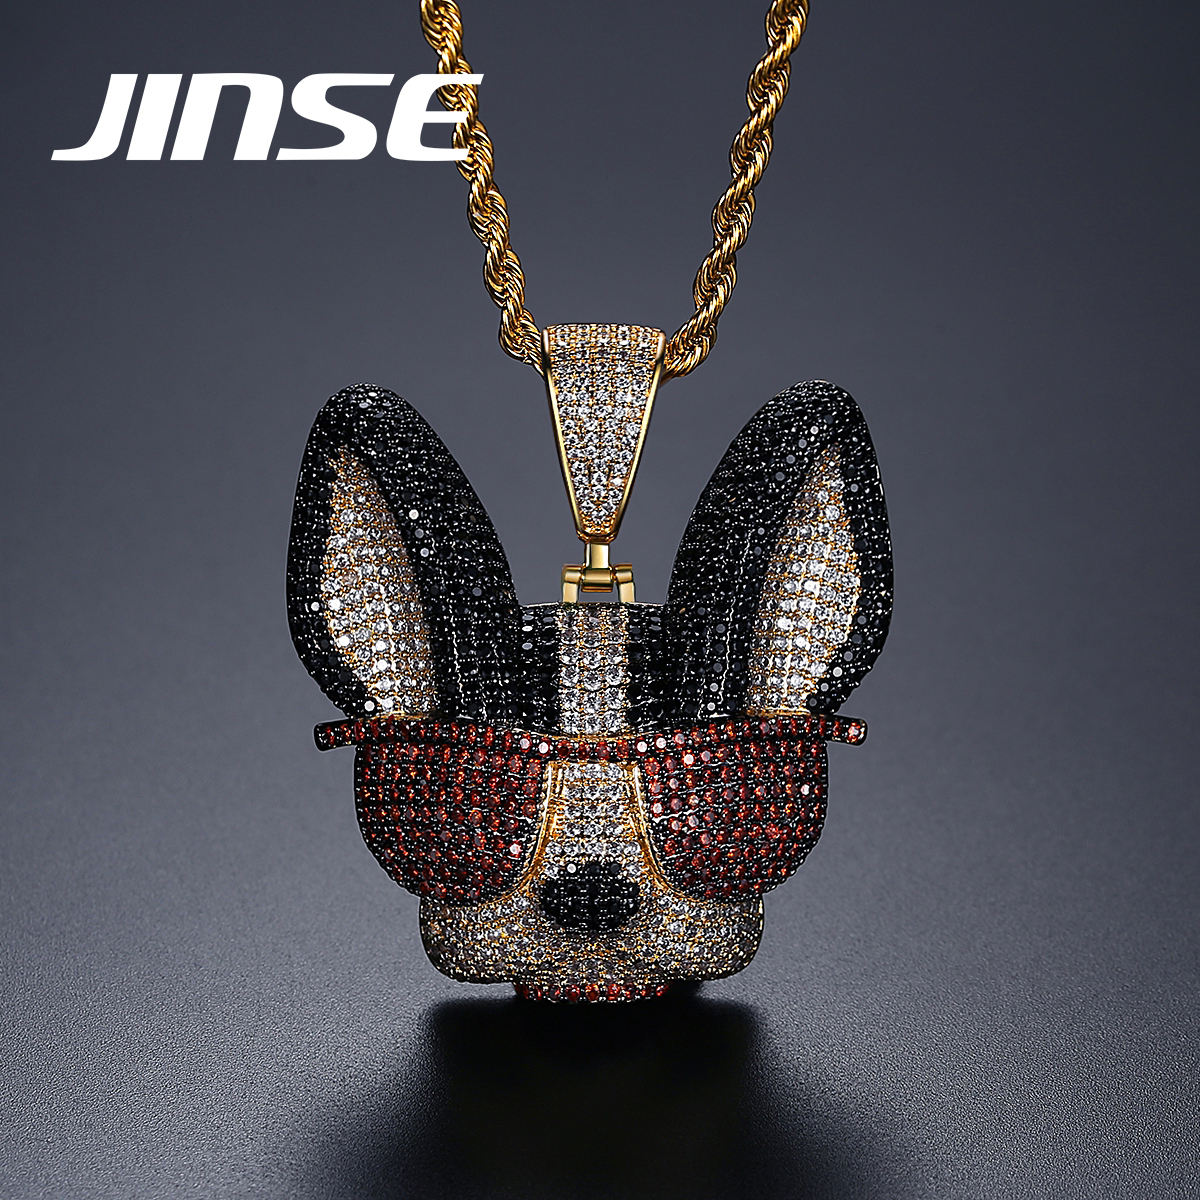 JINSE Fashion Jewellery Manufacturer Animal Dog Pendant Necklace Hip Hop Jewelry Women